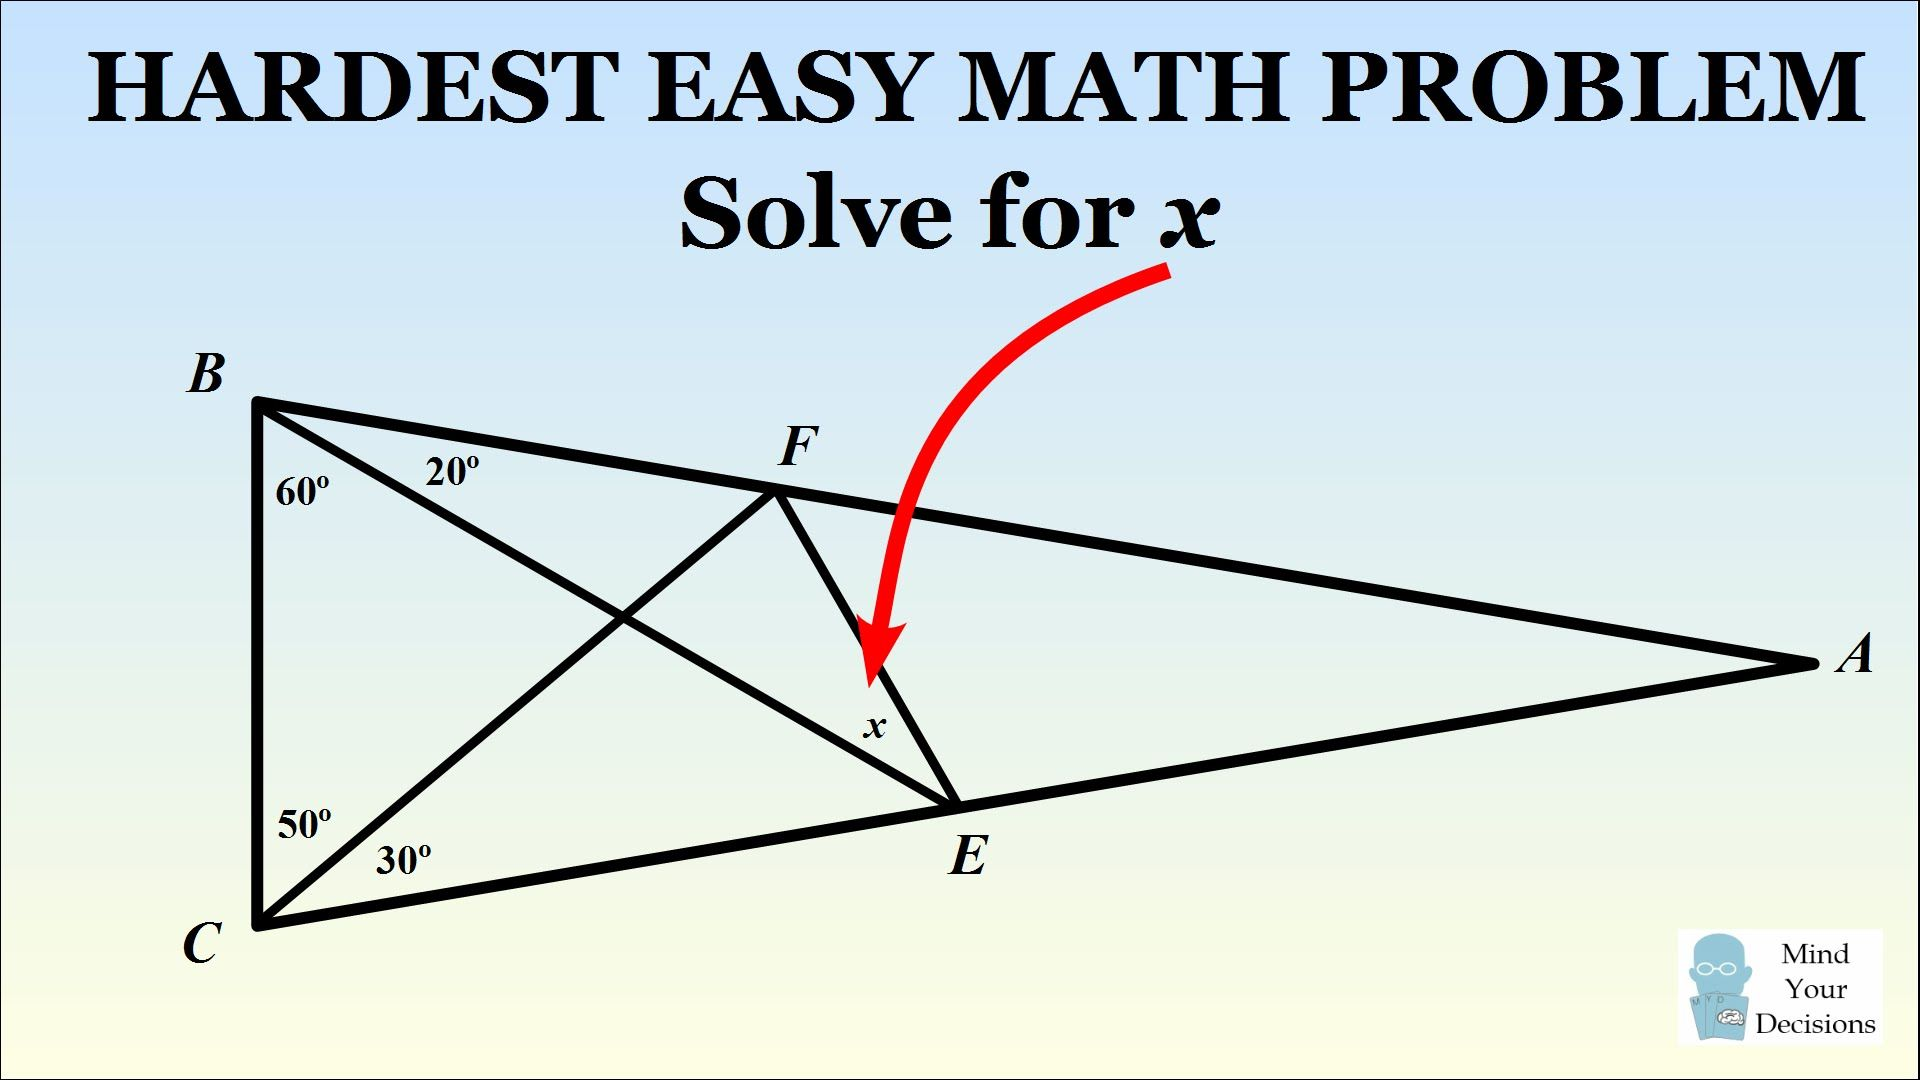 Can you solve the hardest easy geometry problem simple